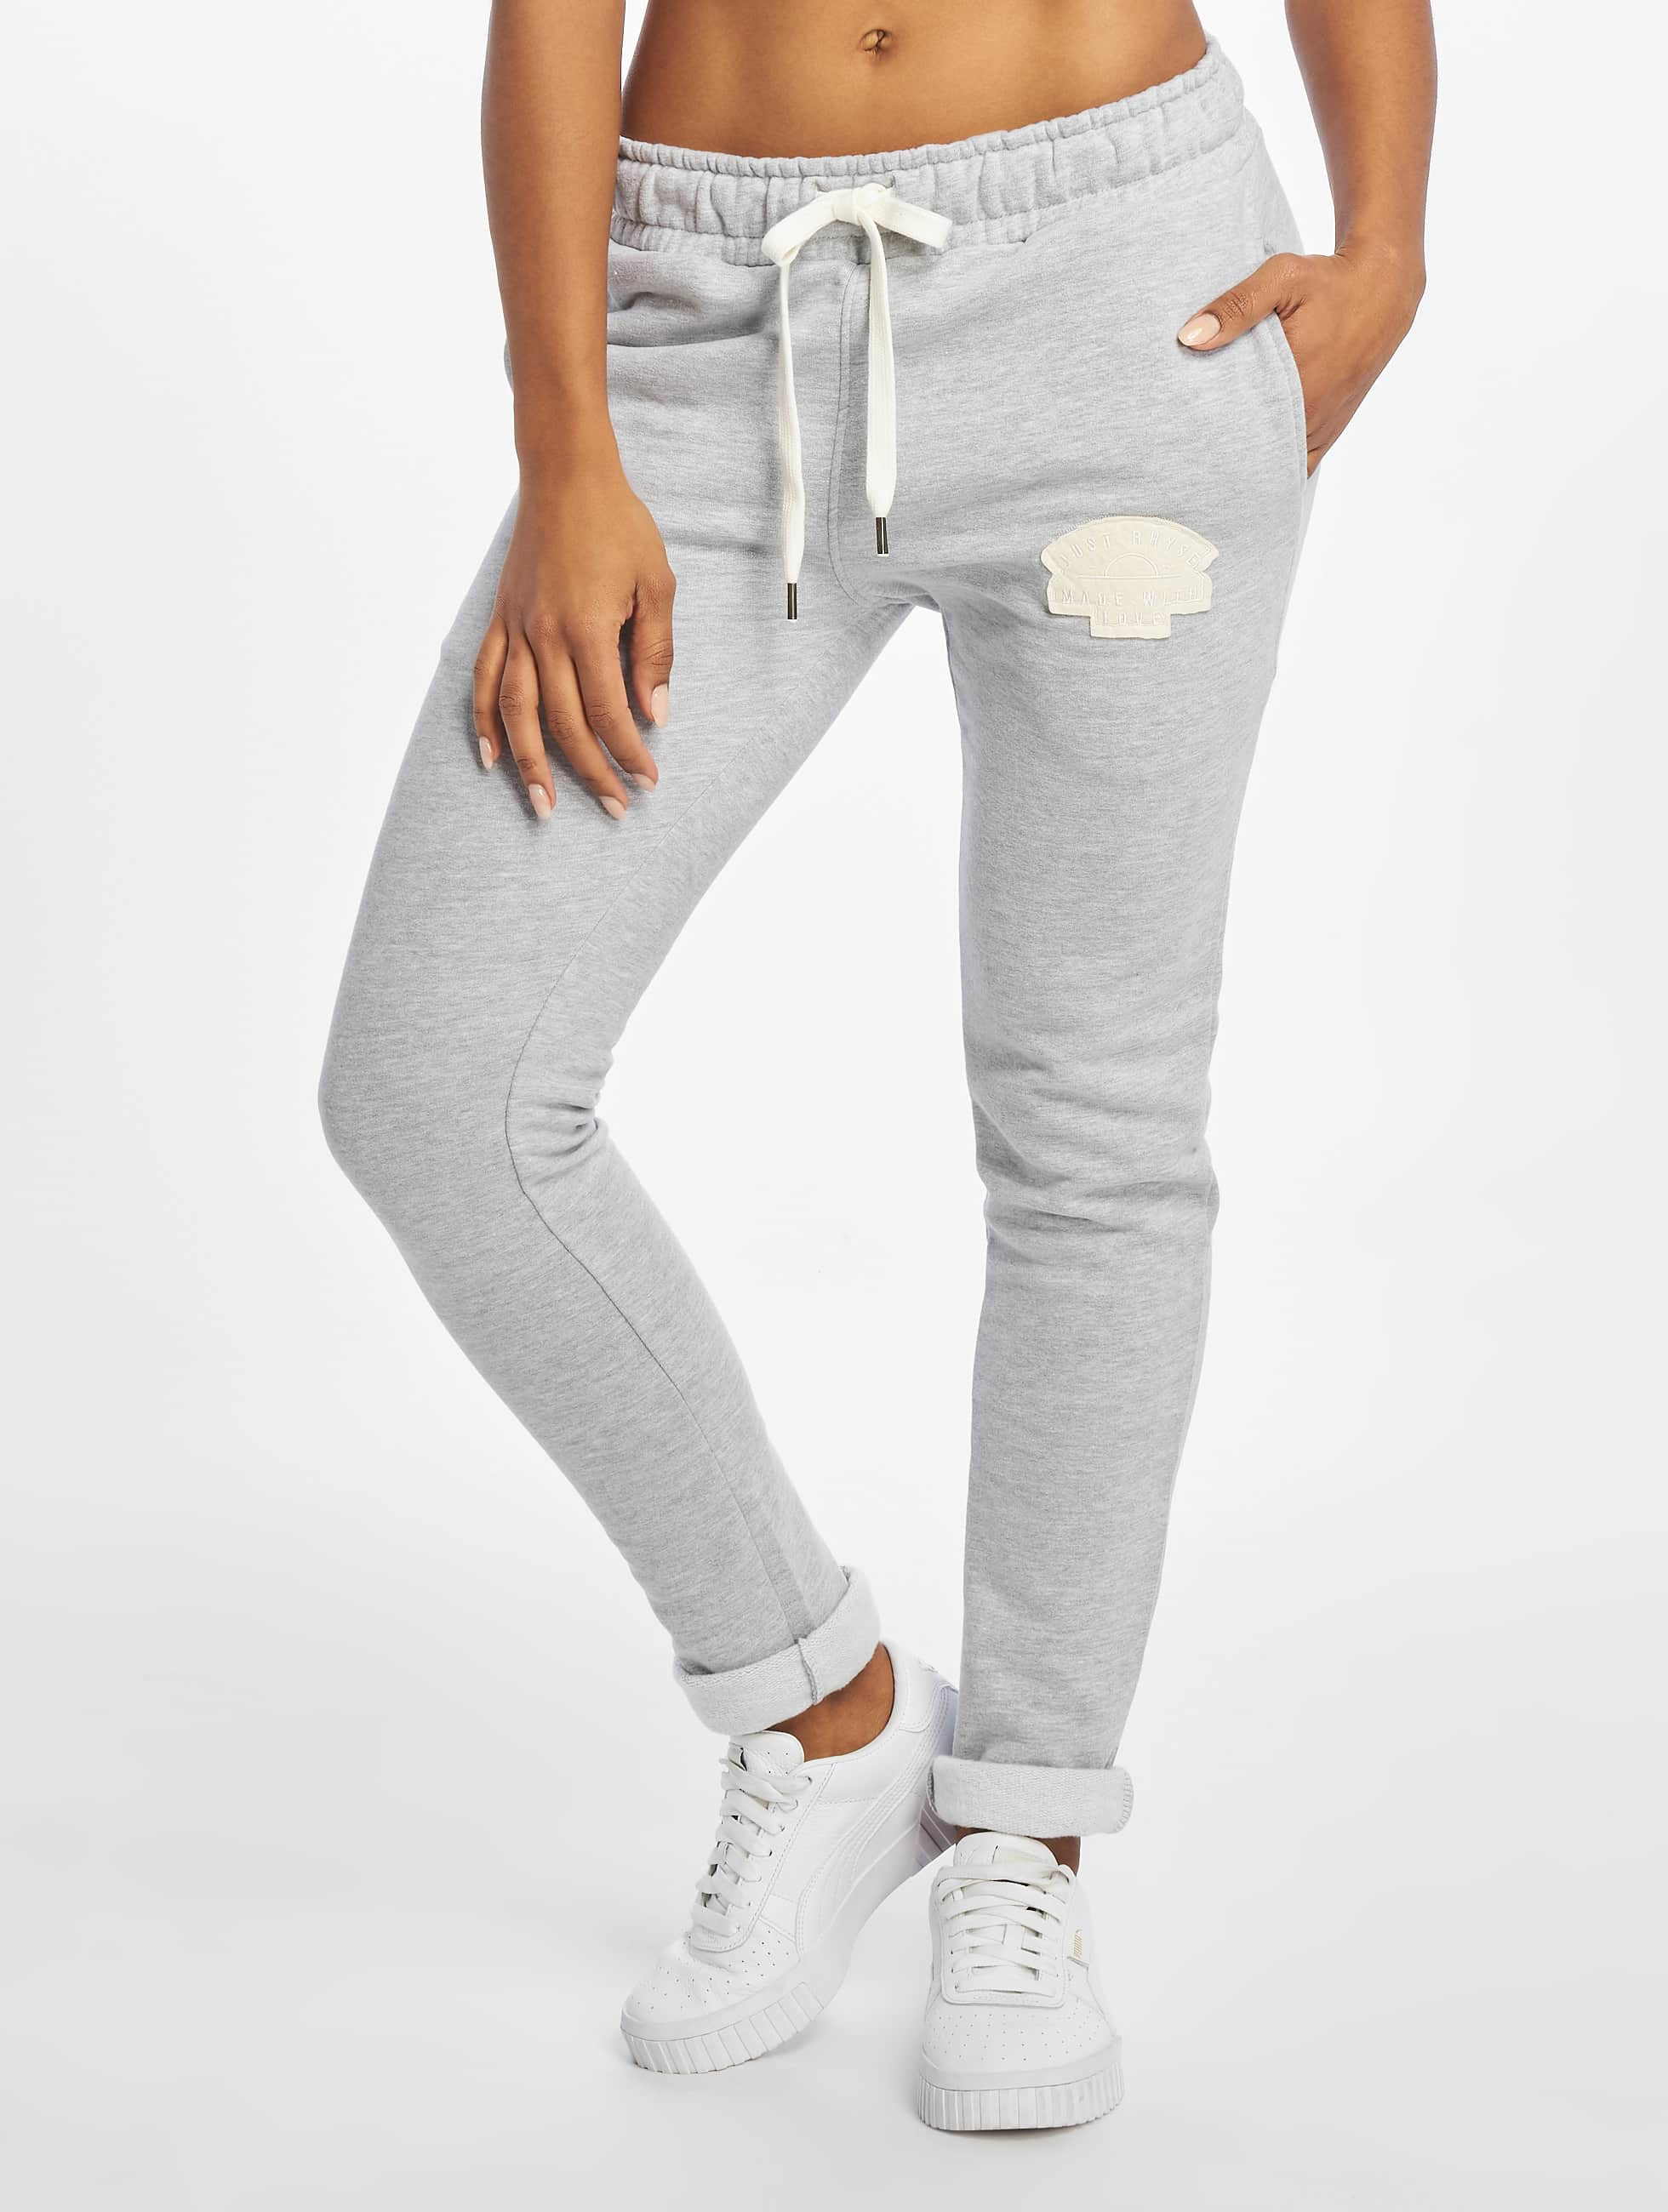 Just Rhyse / Sweat Pant Madera in grey XS